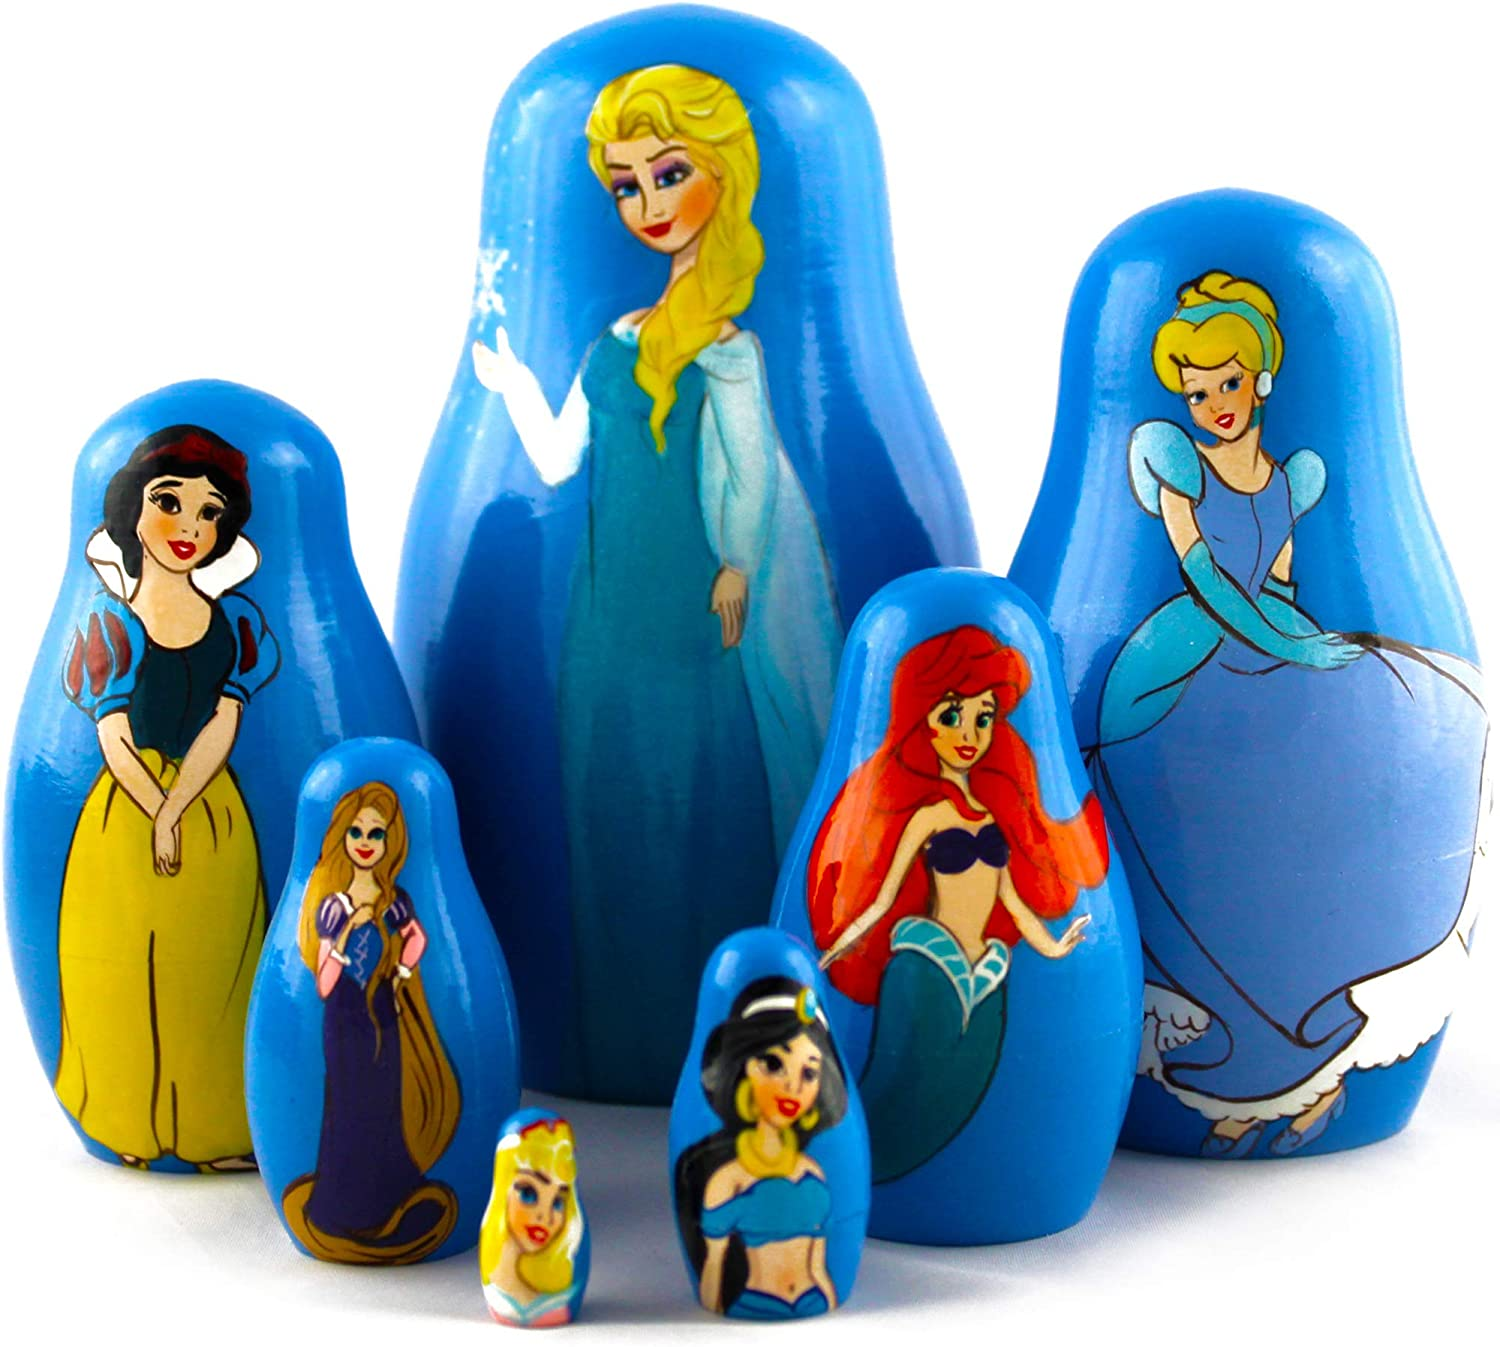 Fairy Princesses Dolls Set 7 Pieces Ranking TOP10 Nesting Wooden security - Dol Russian